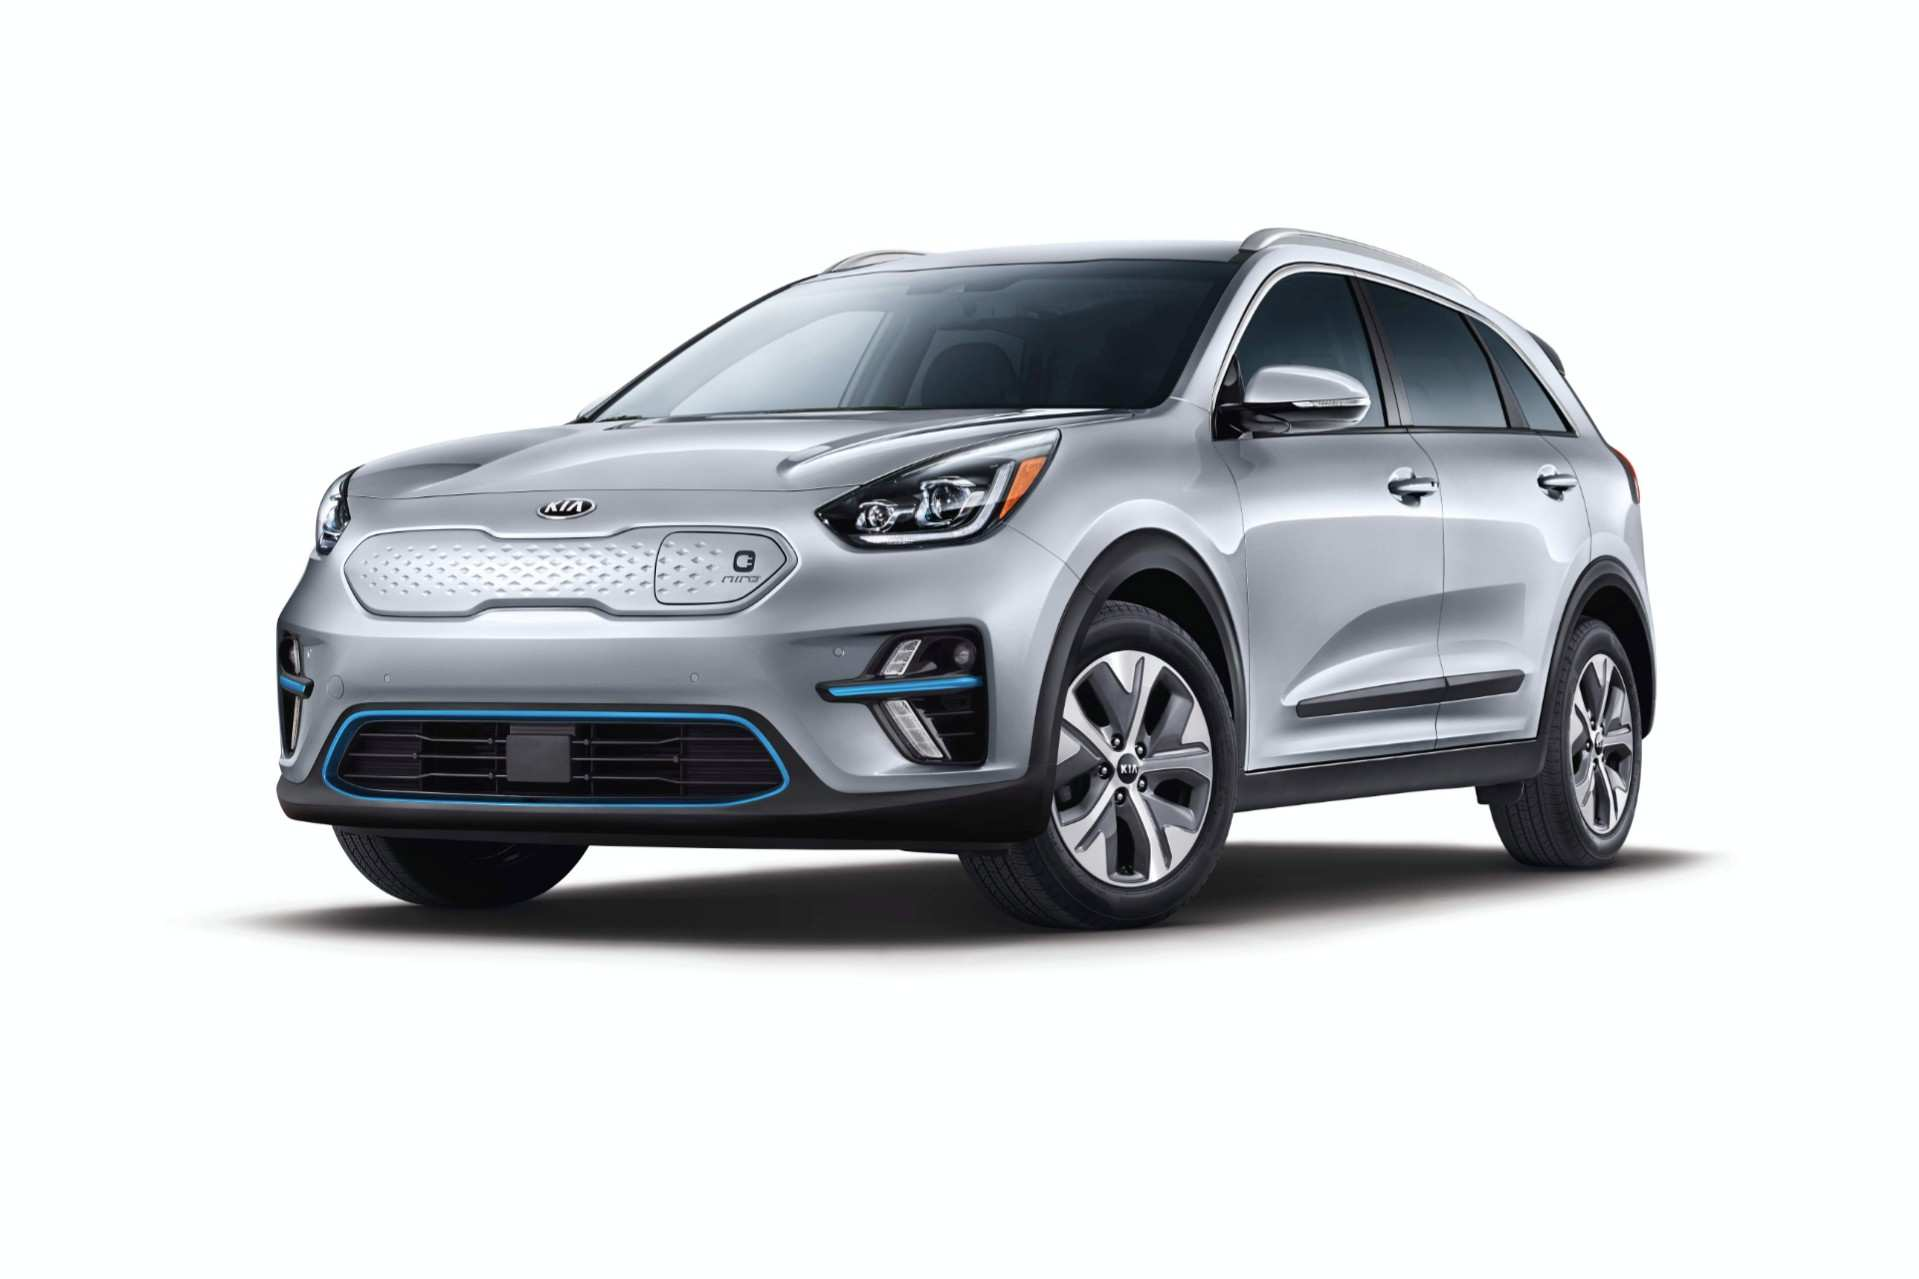 84 Gallery of 2019 Kia Niro Ev Release Date Pricing by 2019 Kia Niro Ev Release Date